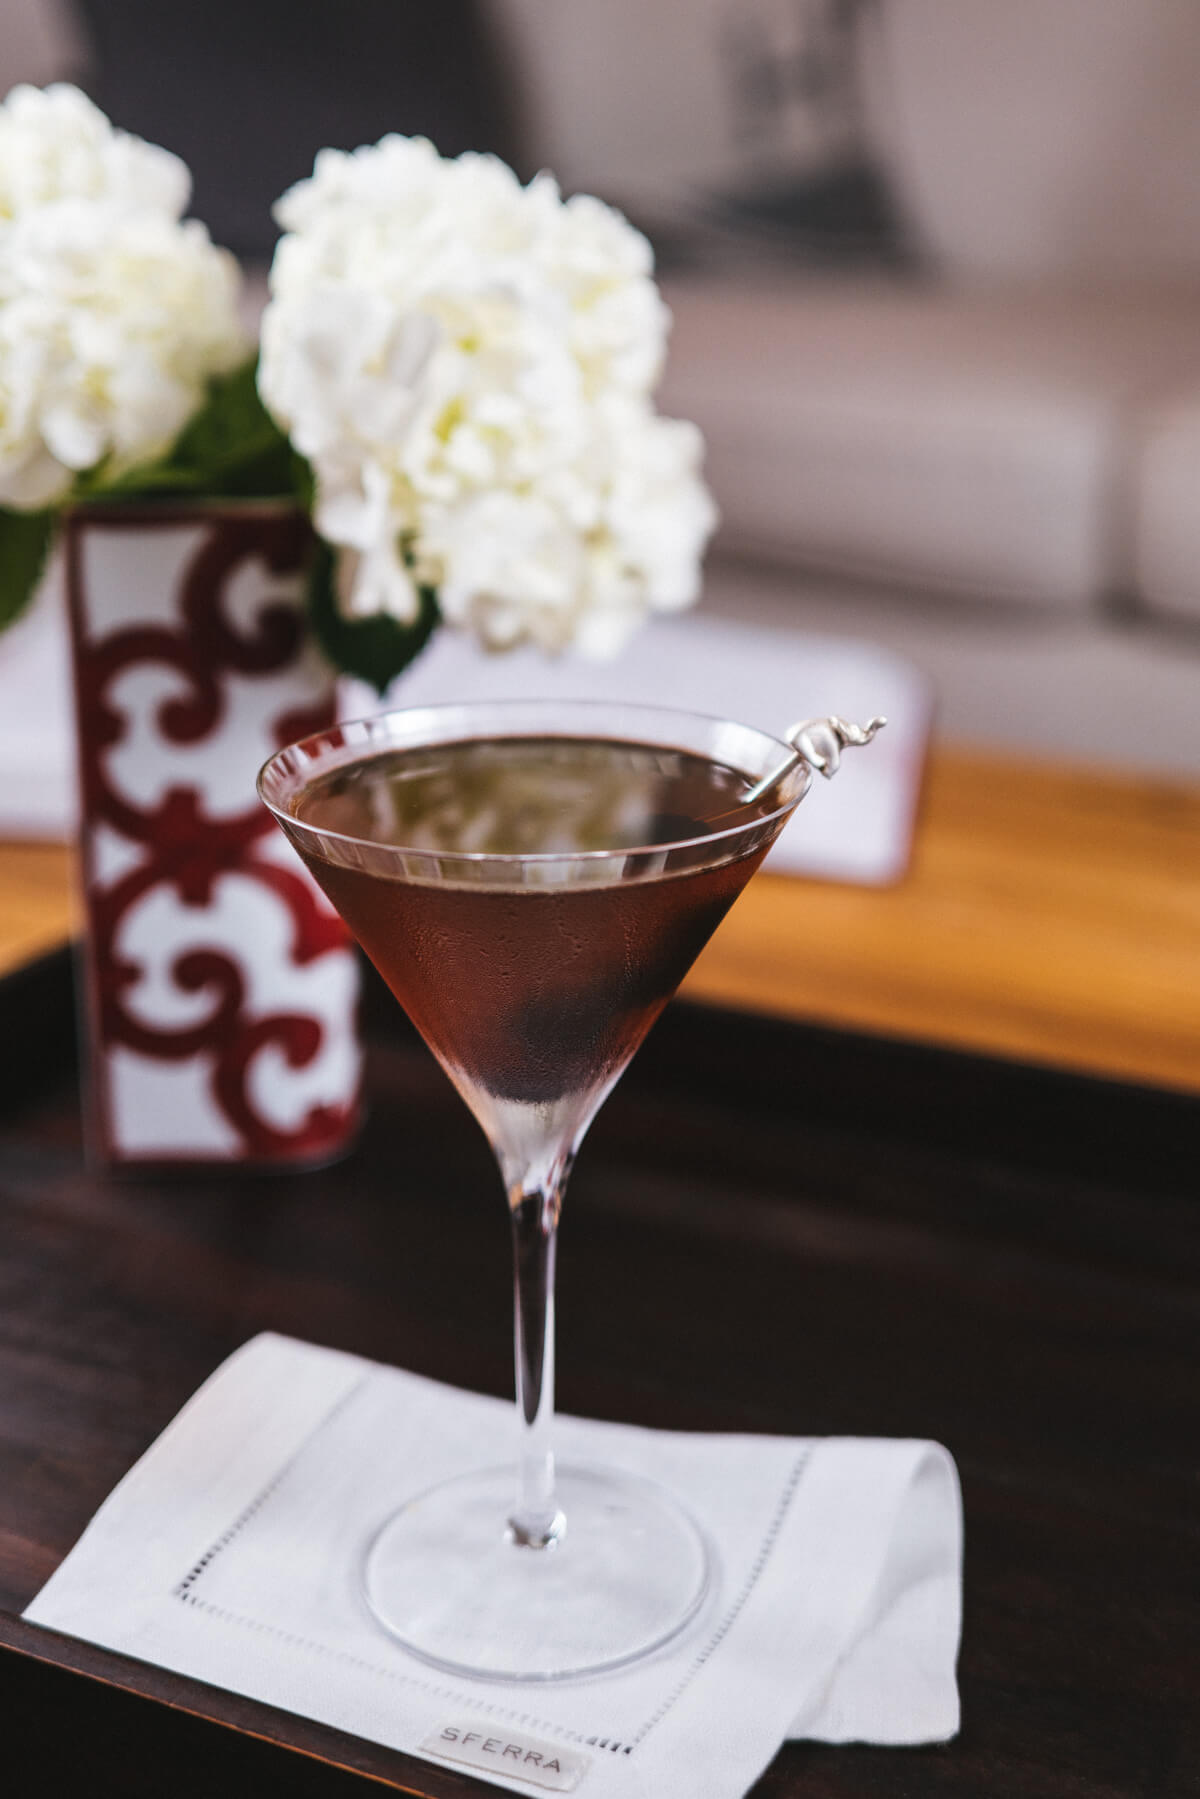 The Taste SF's Classic Manhattan cocktail is made with whisky, vermouth, and luxardo cherries